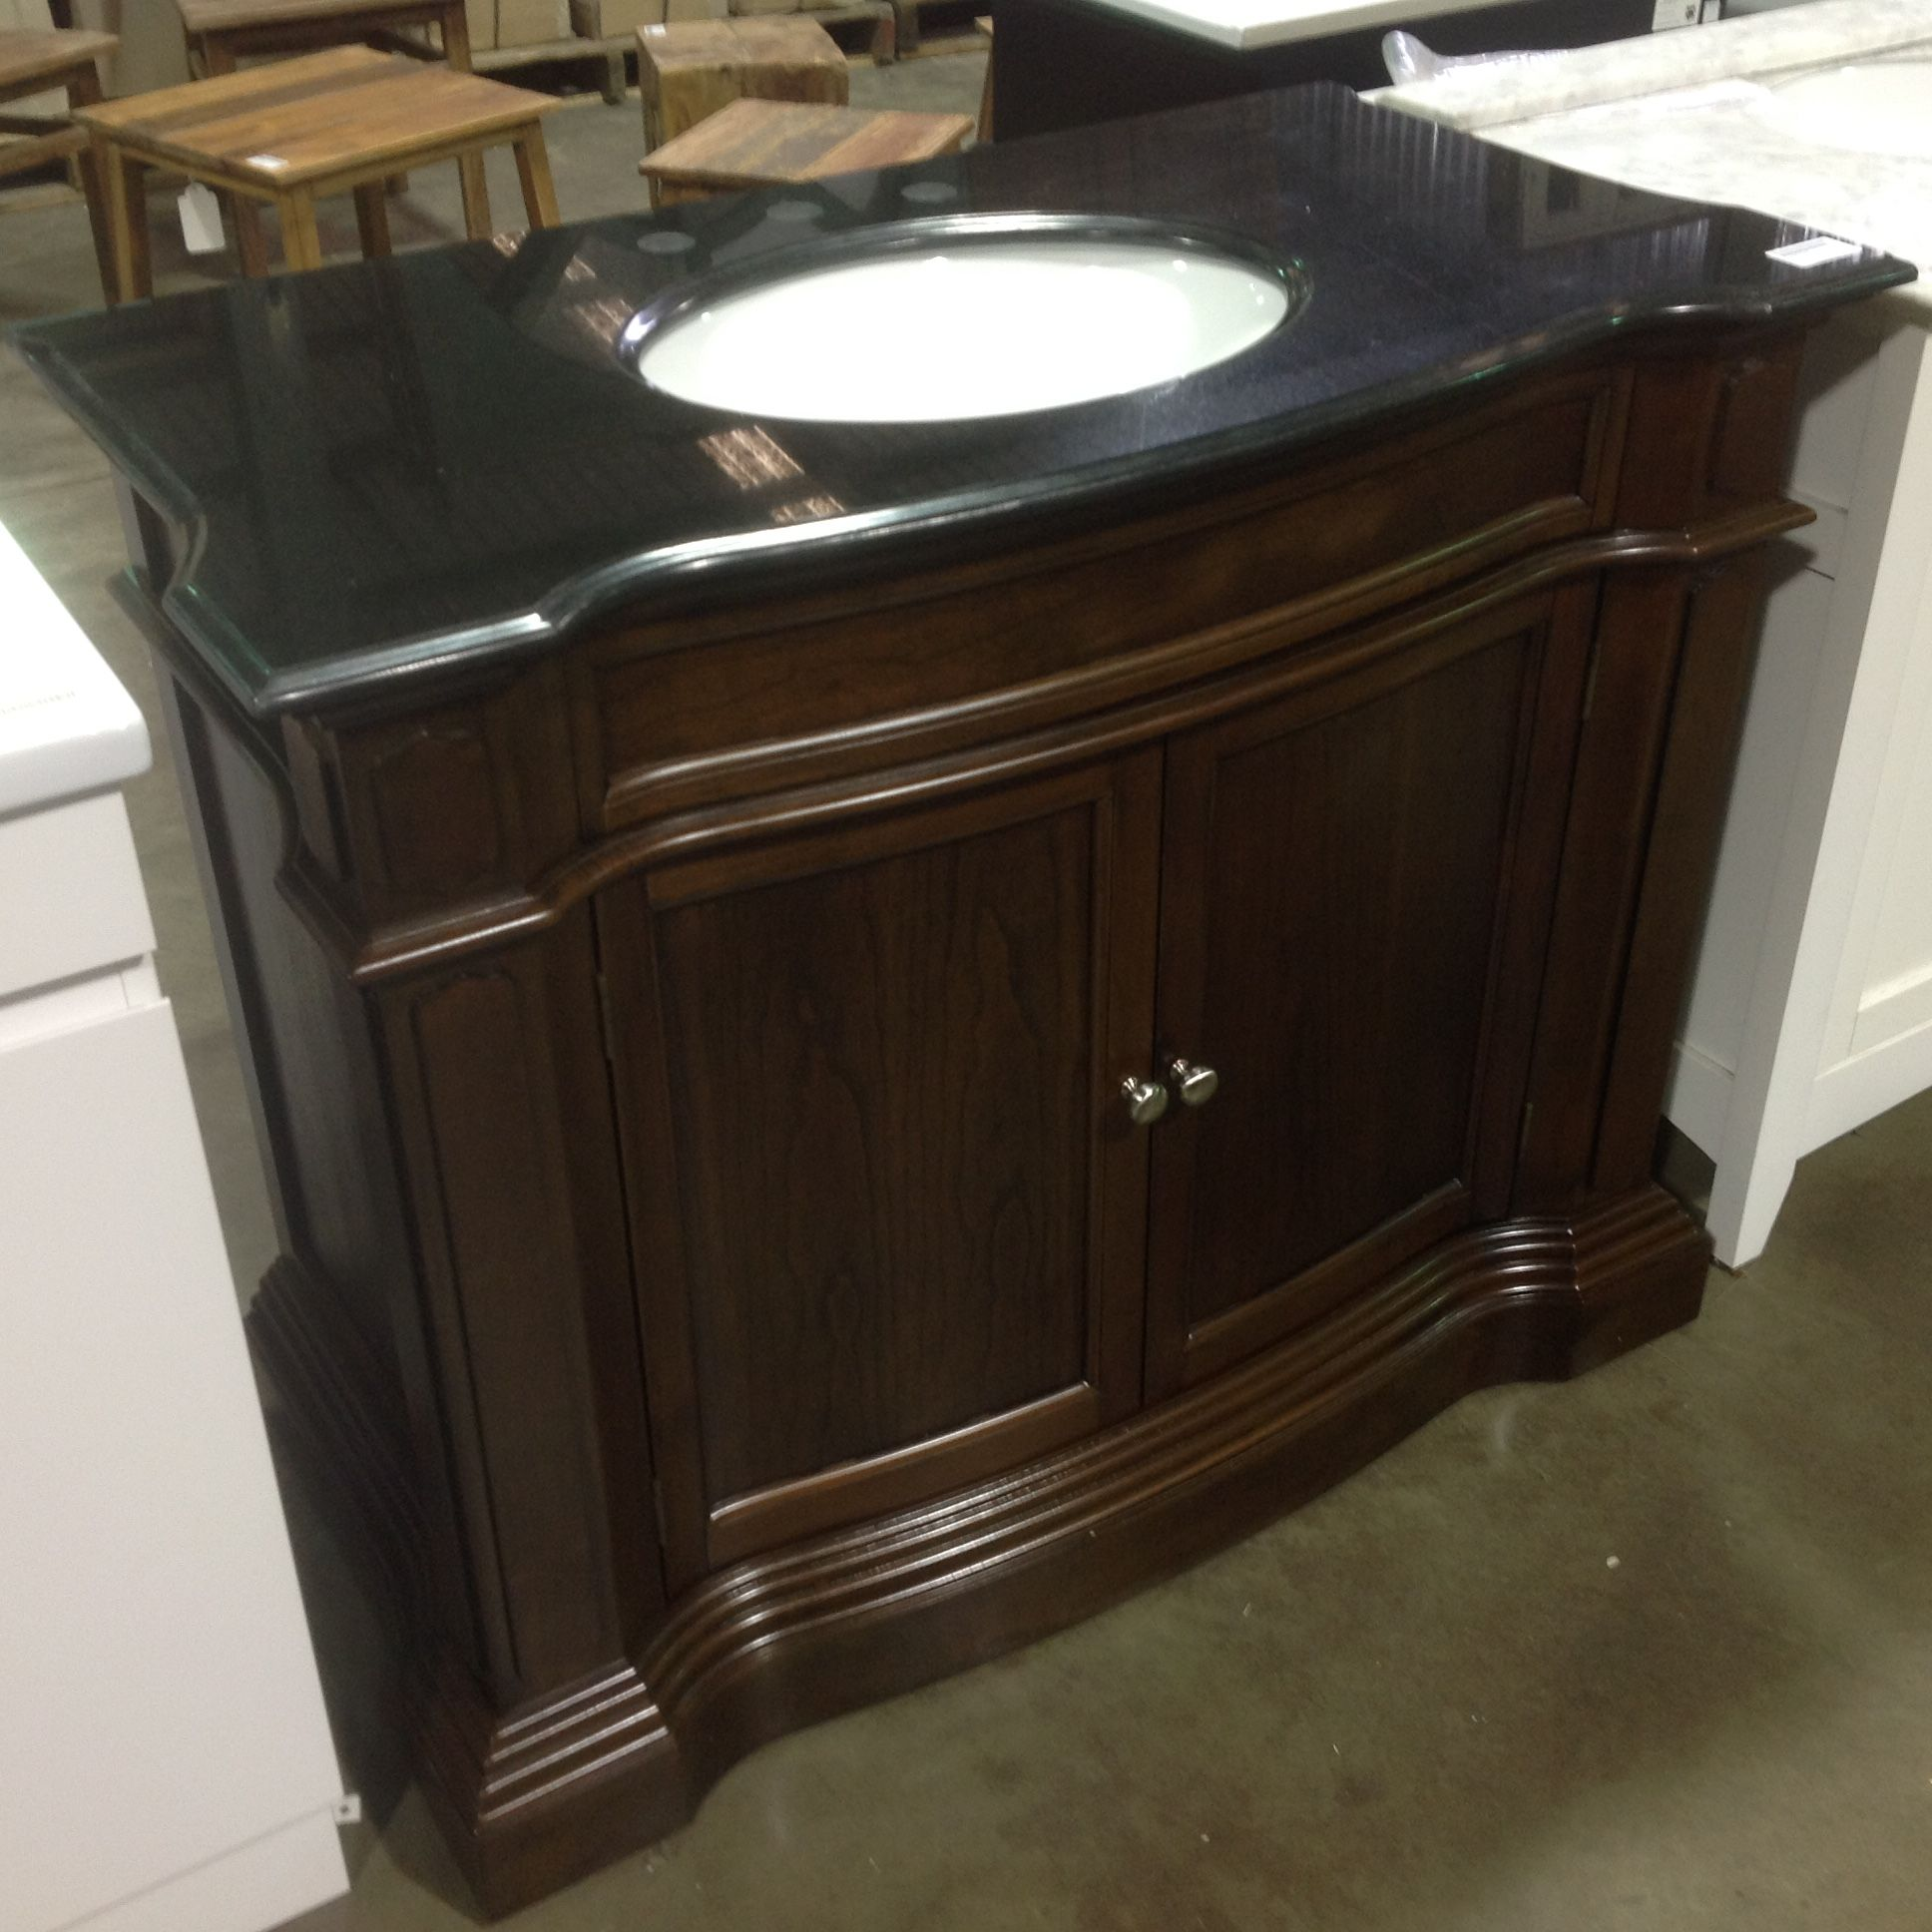 This Dark And Handsome Bathroom Vanity Cabinet Would Make A Great Feature In Your Heritage See Our Website For Details